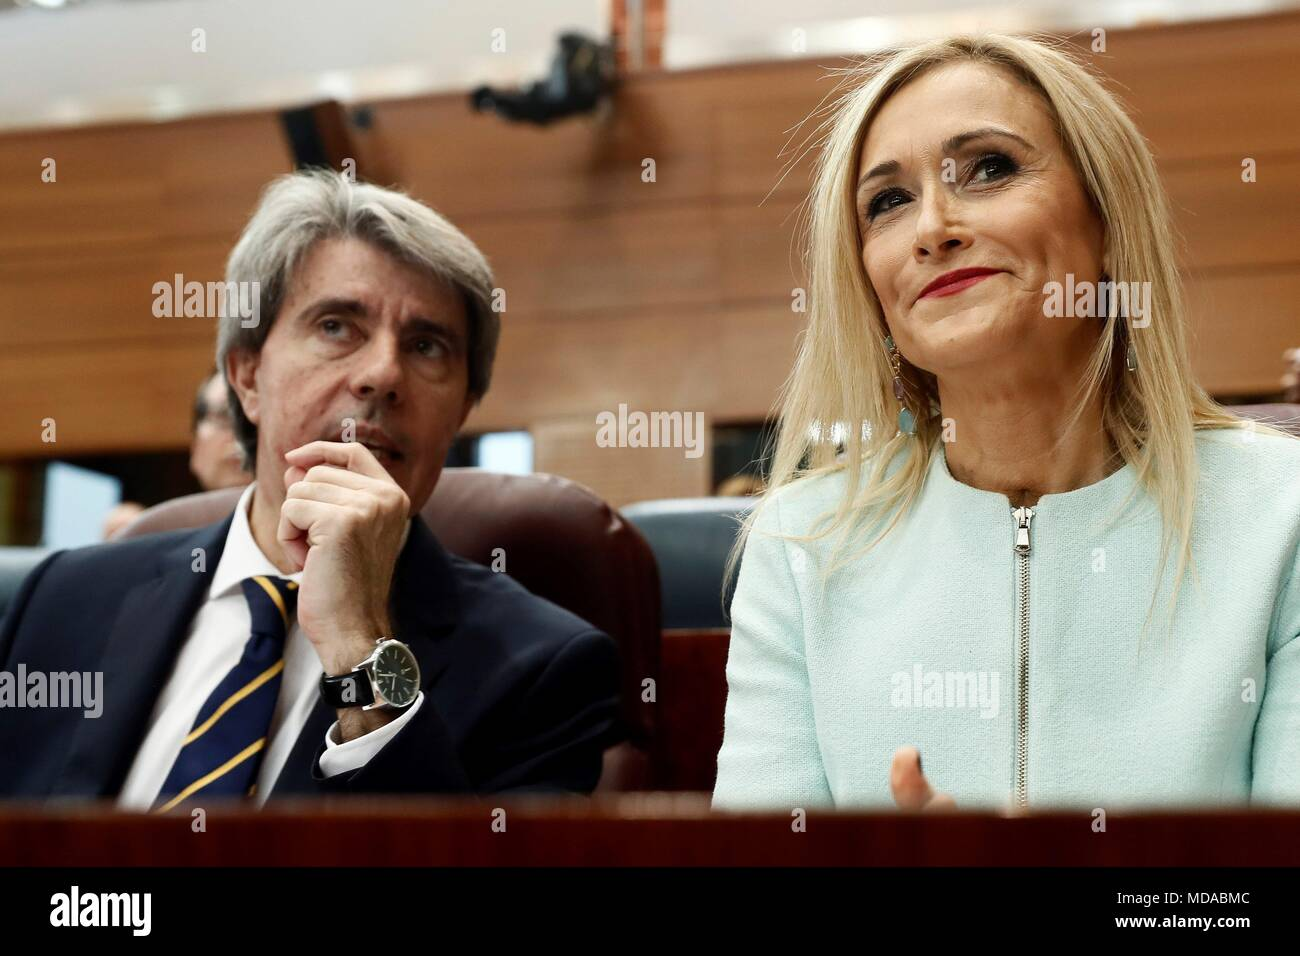 Madrid regional Government President, Cristina Cifuentes (R), next to Madrid's Government Spokesman, Angel Garrido, during the plenary session of the regional Assembly, in Madrid, Spain, 19 April 2018. Cifuentes will answer questions related to the scandal for the alleged falsification of her masters degree grades at Rey Juan Carlos University. EFE/Mariscal - Stock Image